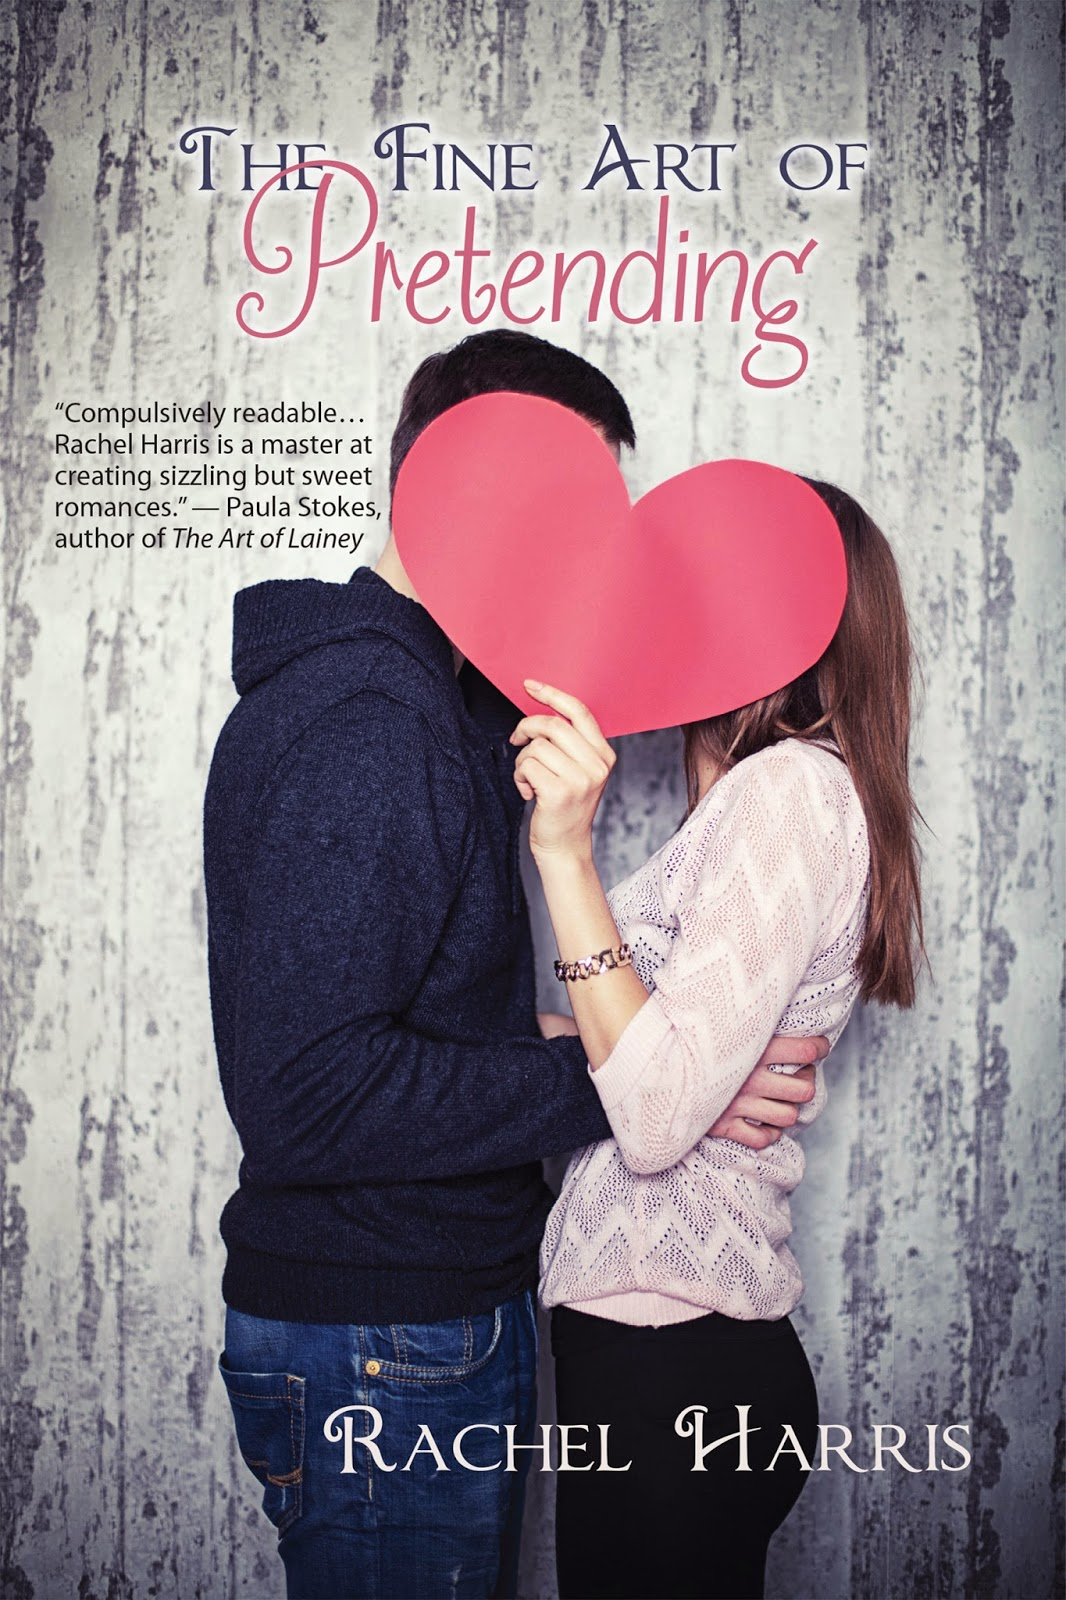 http://i-am-so-grateful.blogspot.com/2014/01/cover-reveal-fine-art-of-pretending-by.html